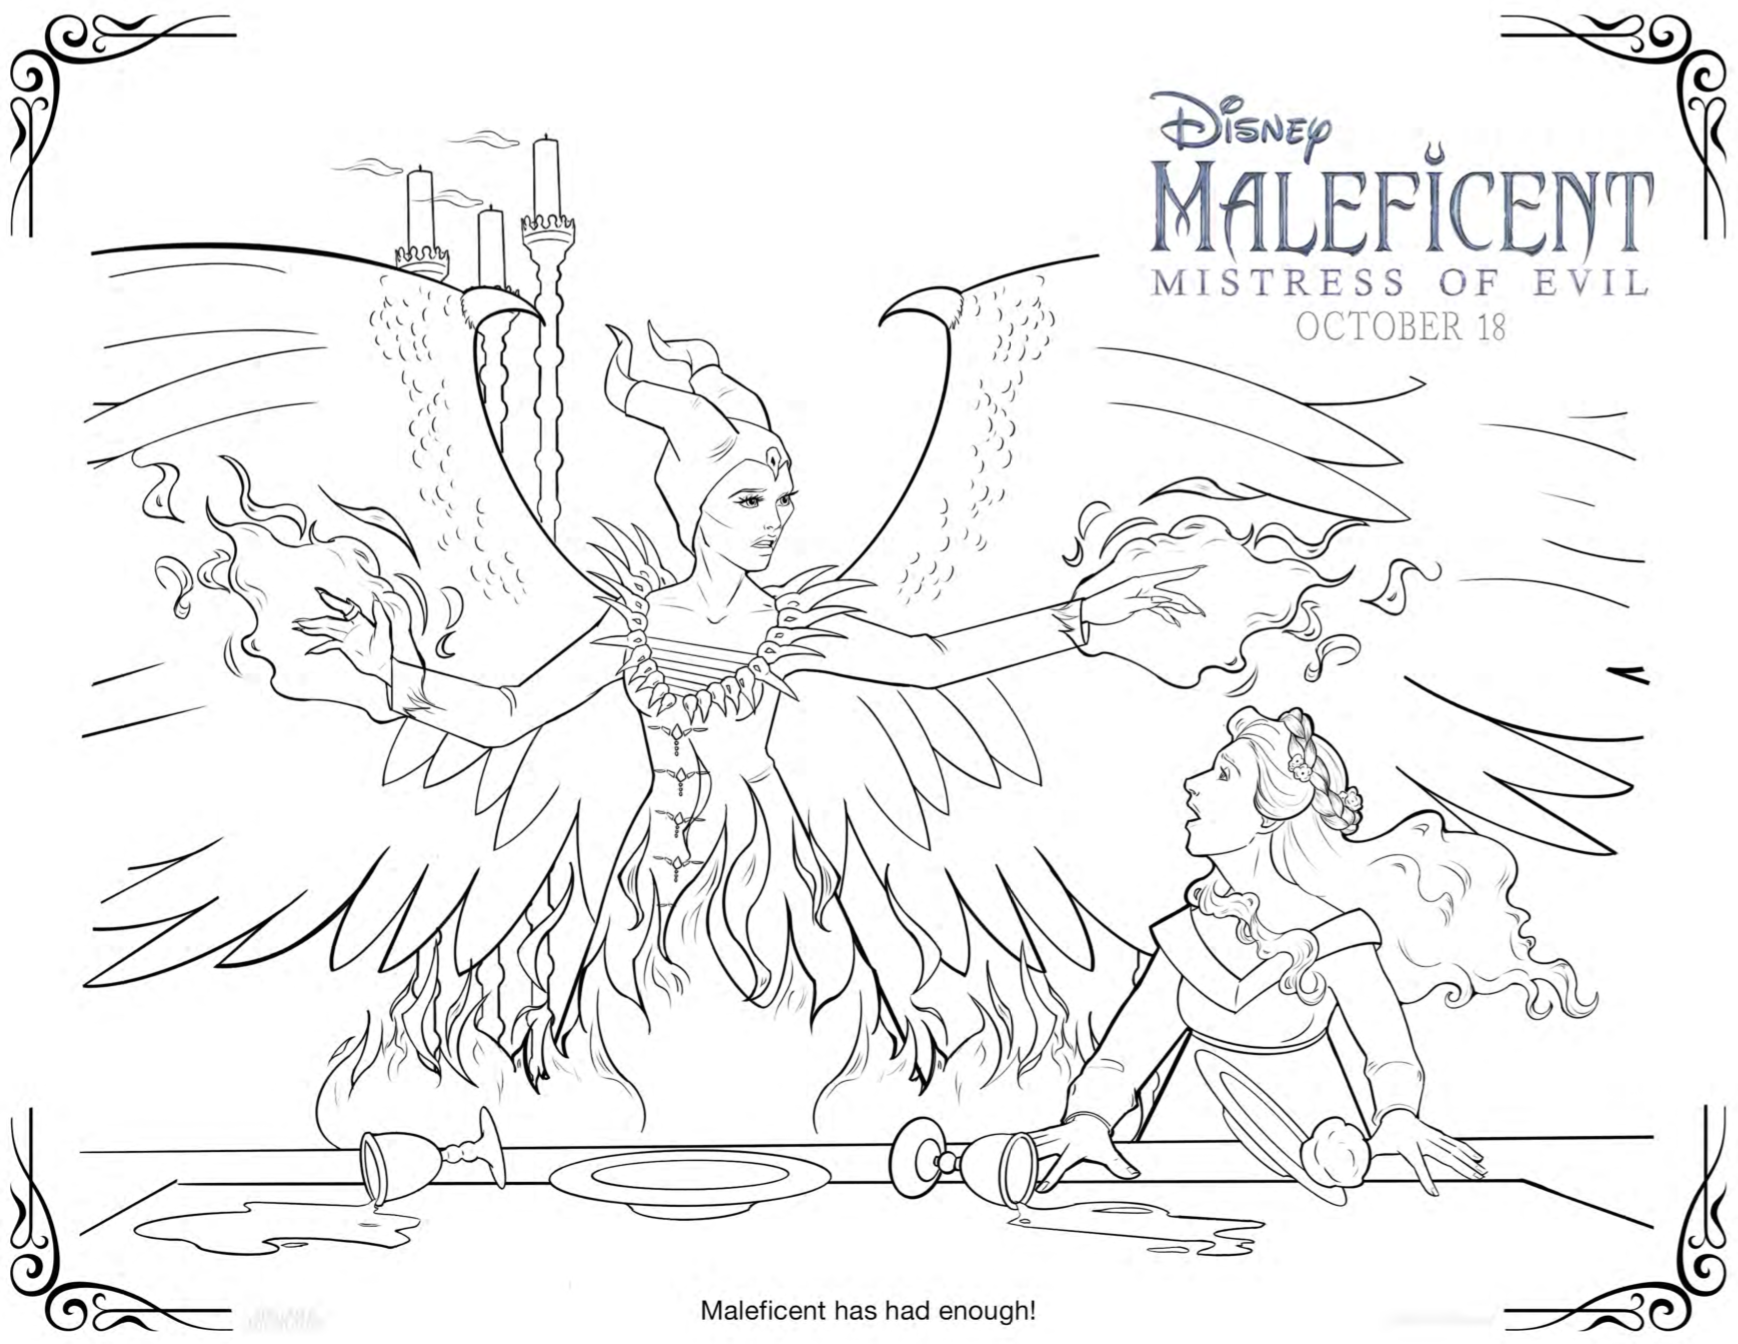 maleficent mistress of evil party ideas diy headband coloring sheets and recipes popcorner reviews maleficent mistress of evil party